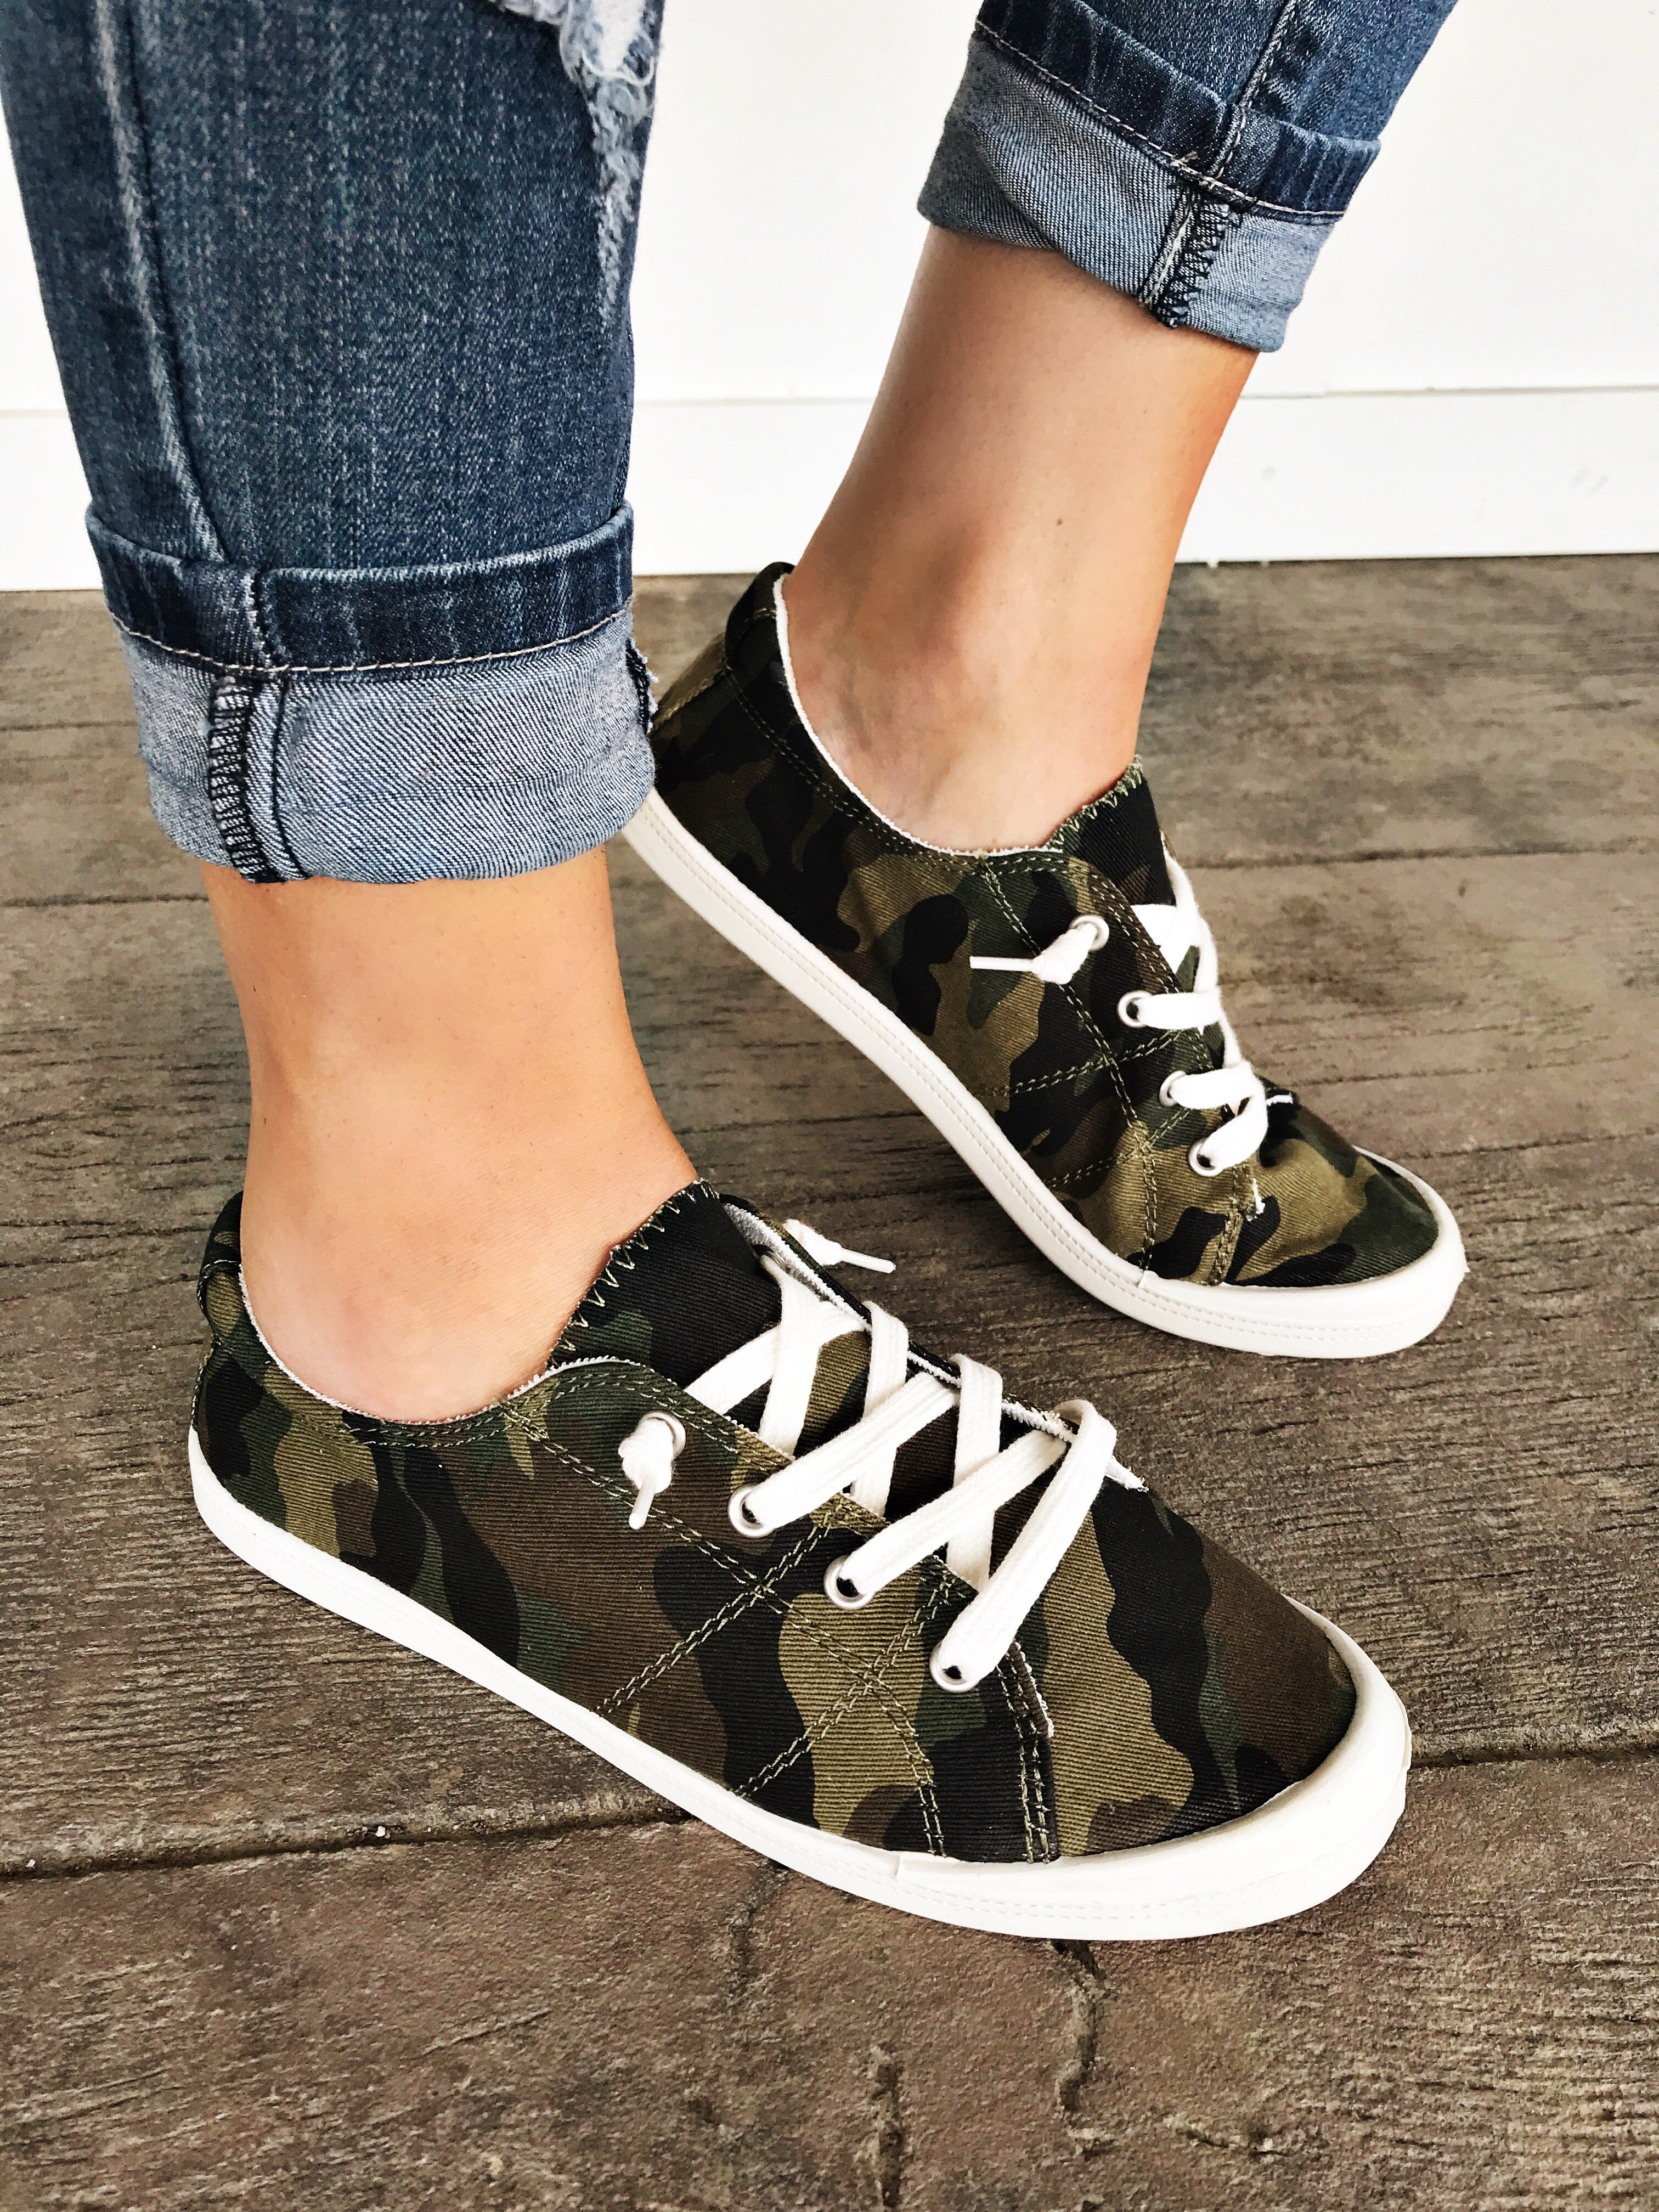 Keeping It Casual Sneakers in Camo